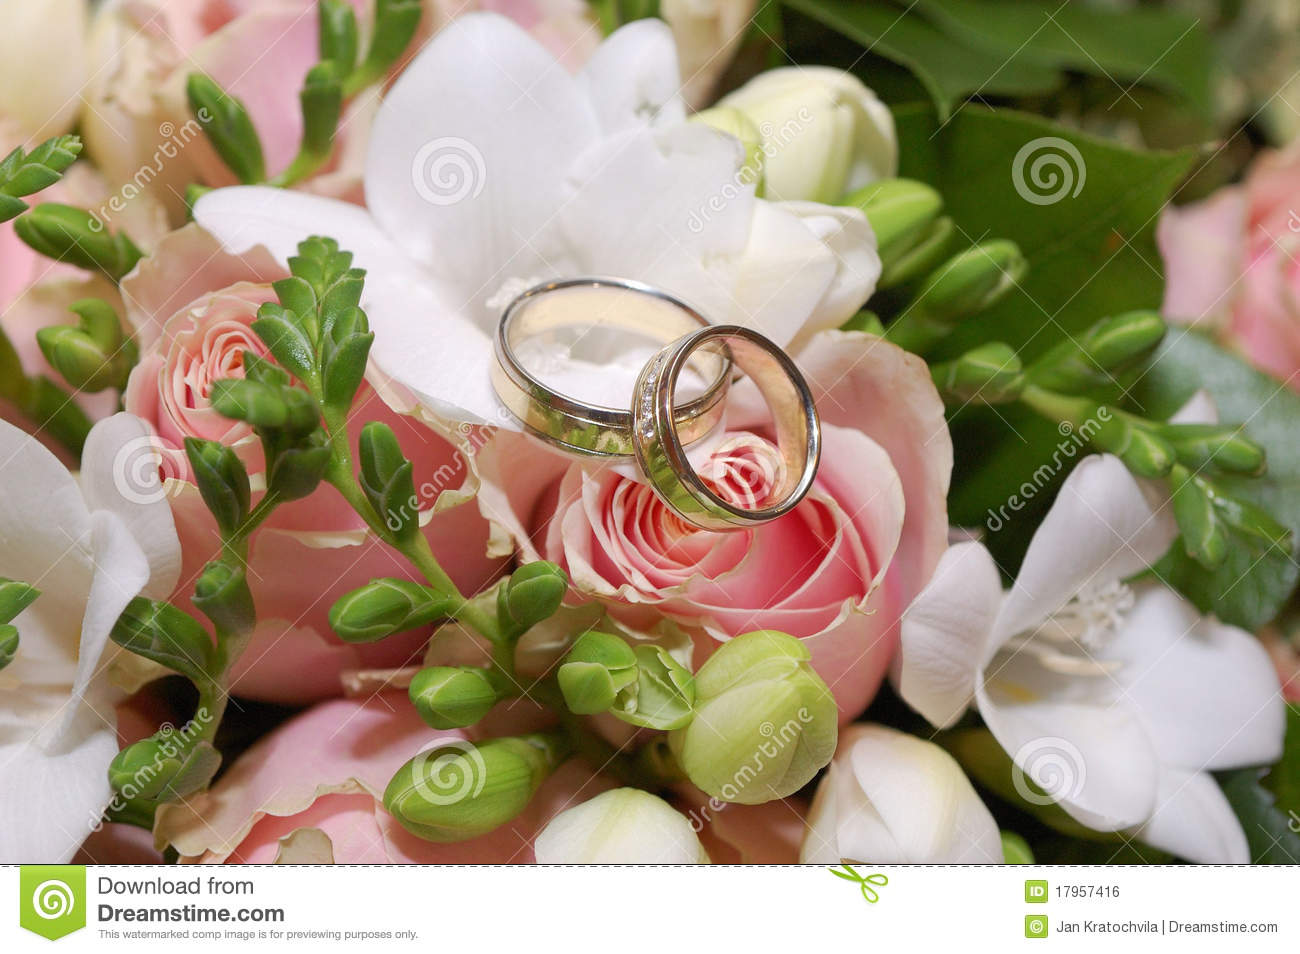 royalty free stock image two wedding rings pink rose flower image rose wedding ring Two wedding rings on pink rose flower